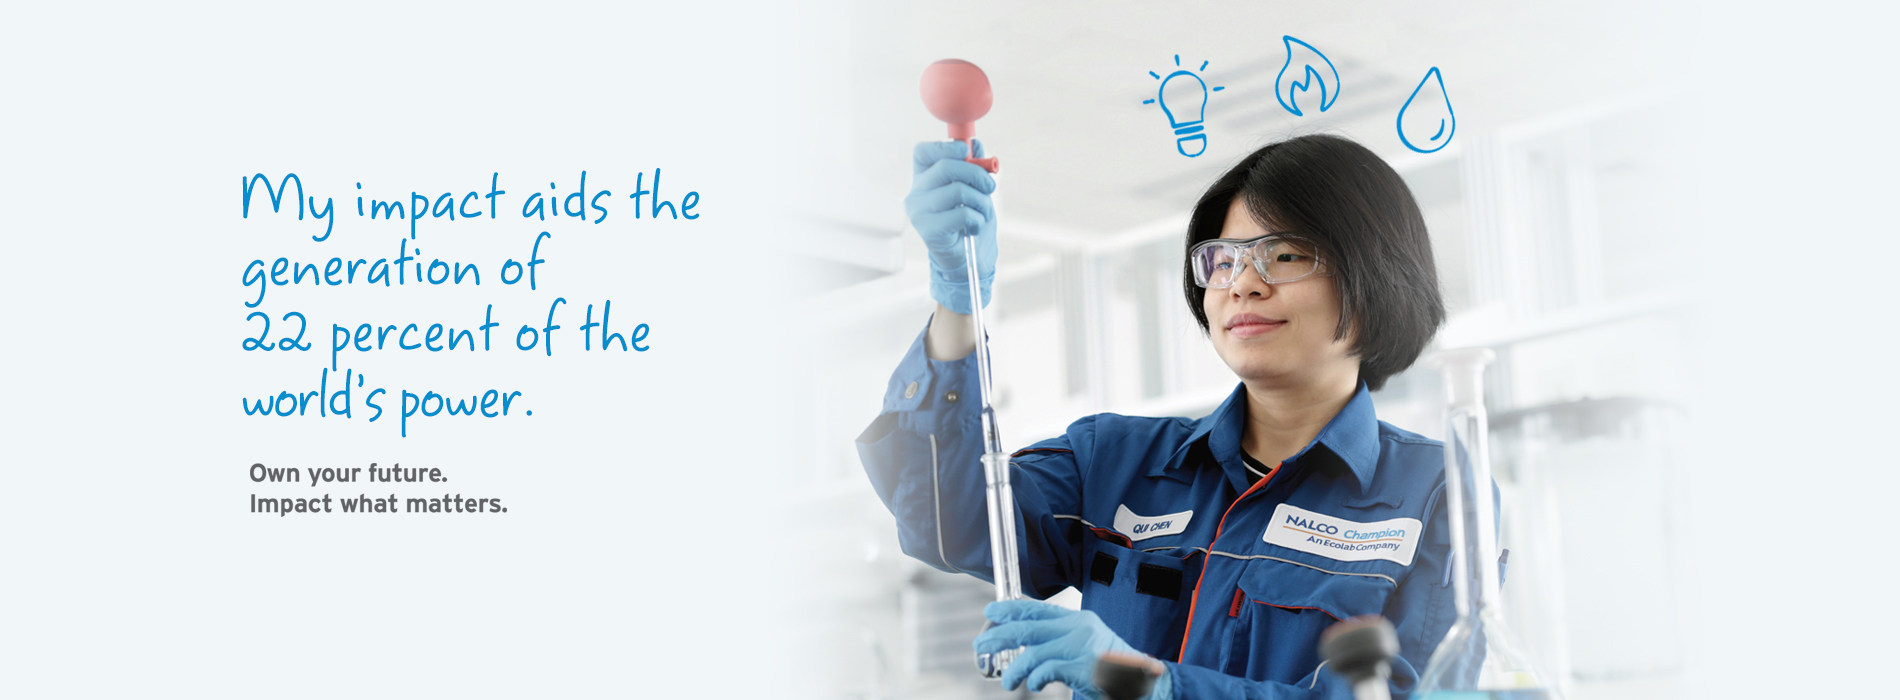 Woman wearing a blue lab coat and safety glasses holding a lab instrument. Caption reads: My impact aids the generation of 22 percent of the world's power. Own your future. impact what matters.